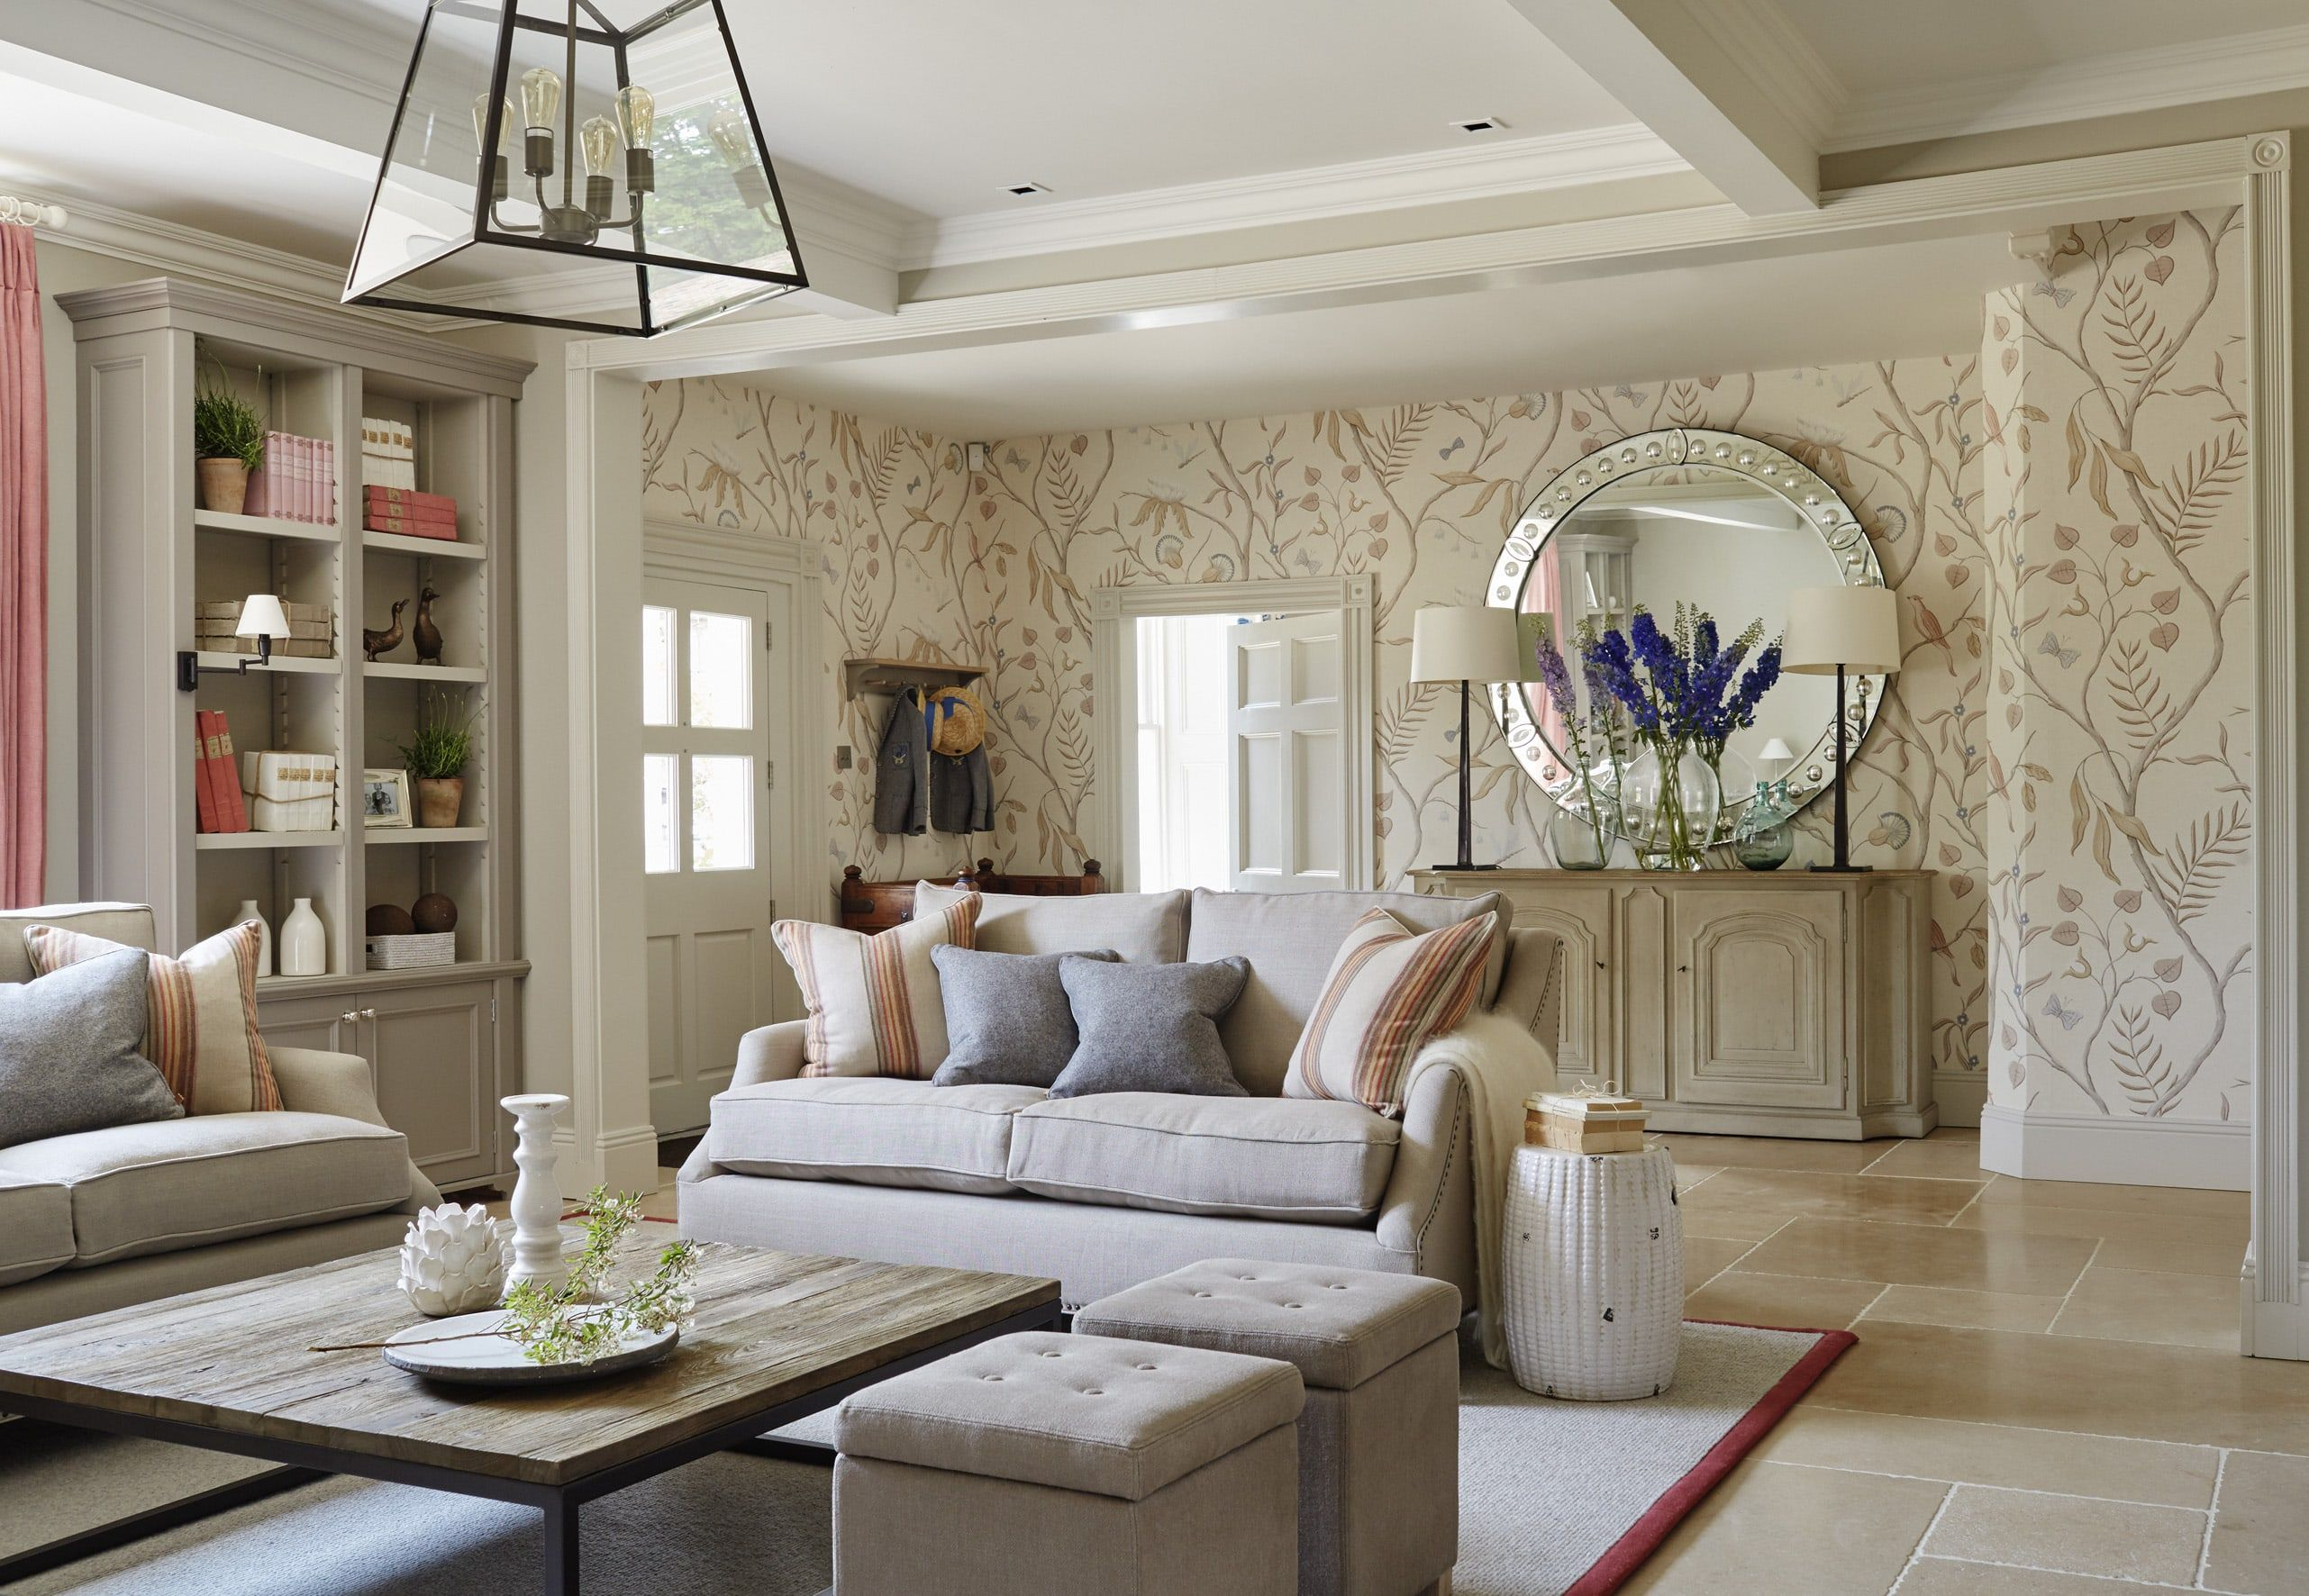 Entrance Hall / Sitting Area | Living Room | Pinterest | Entrance ...